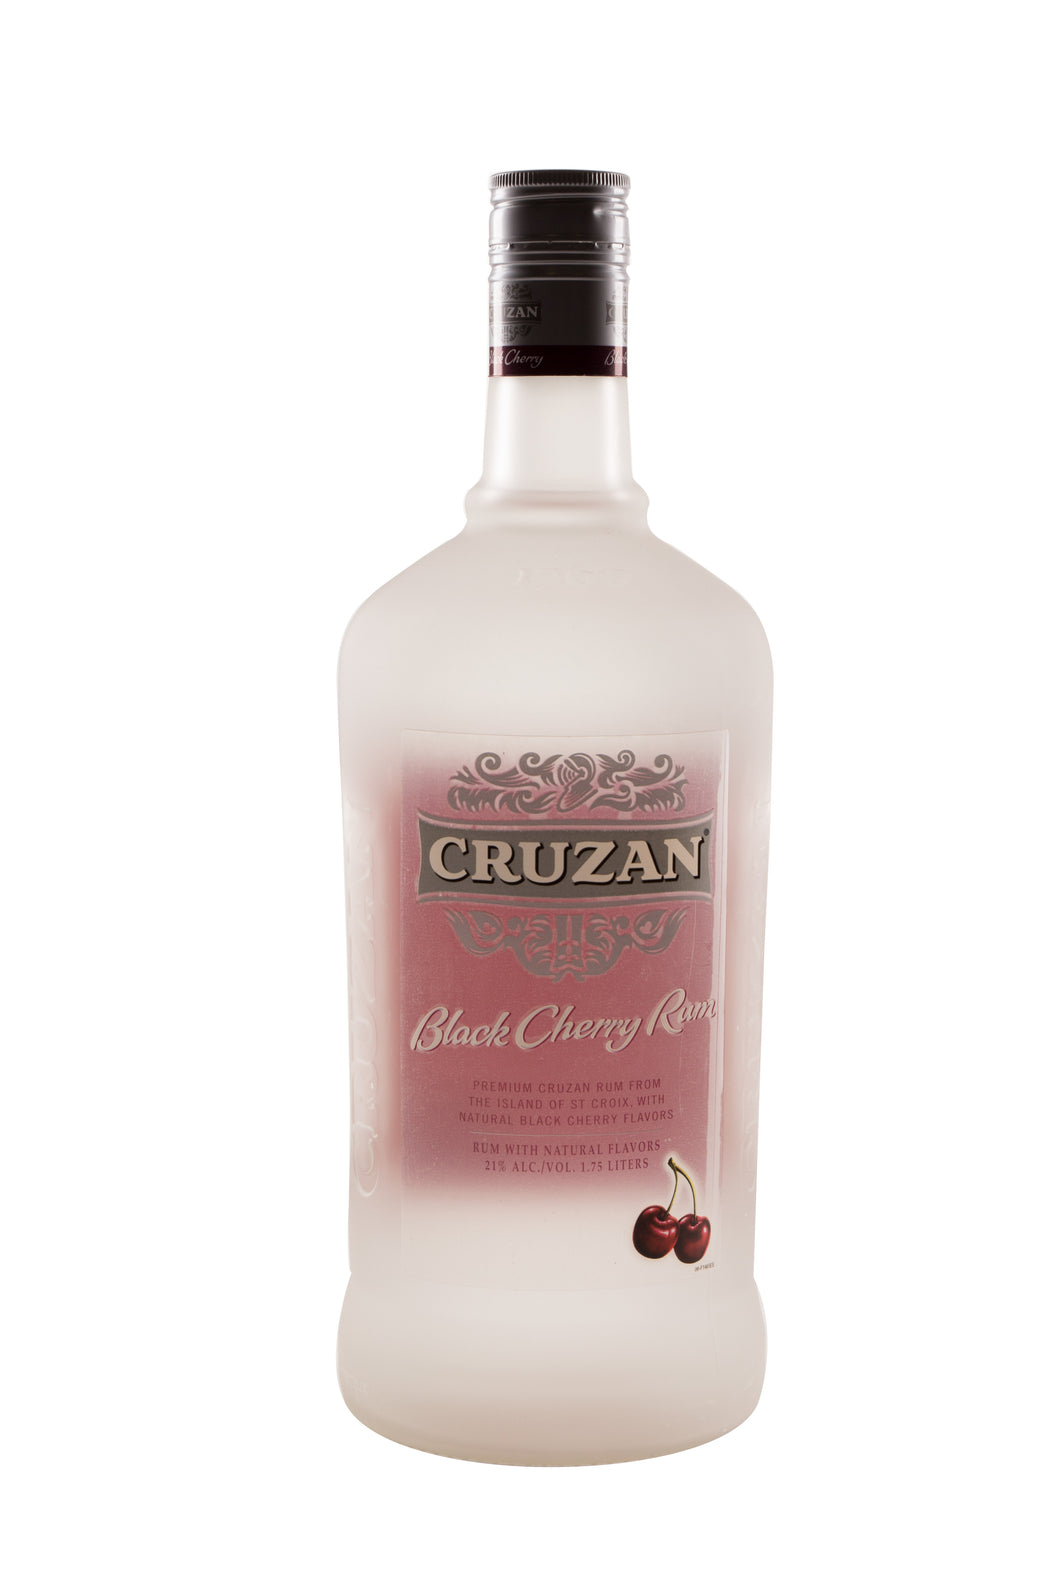 Cruzan Black Cherry Rum 1.75L